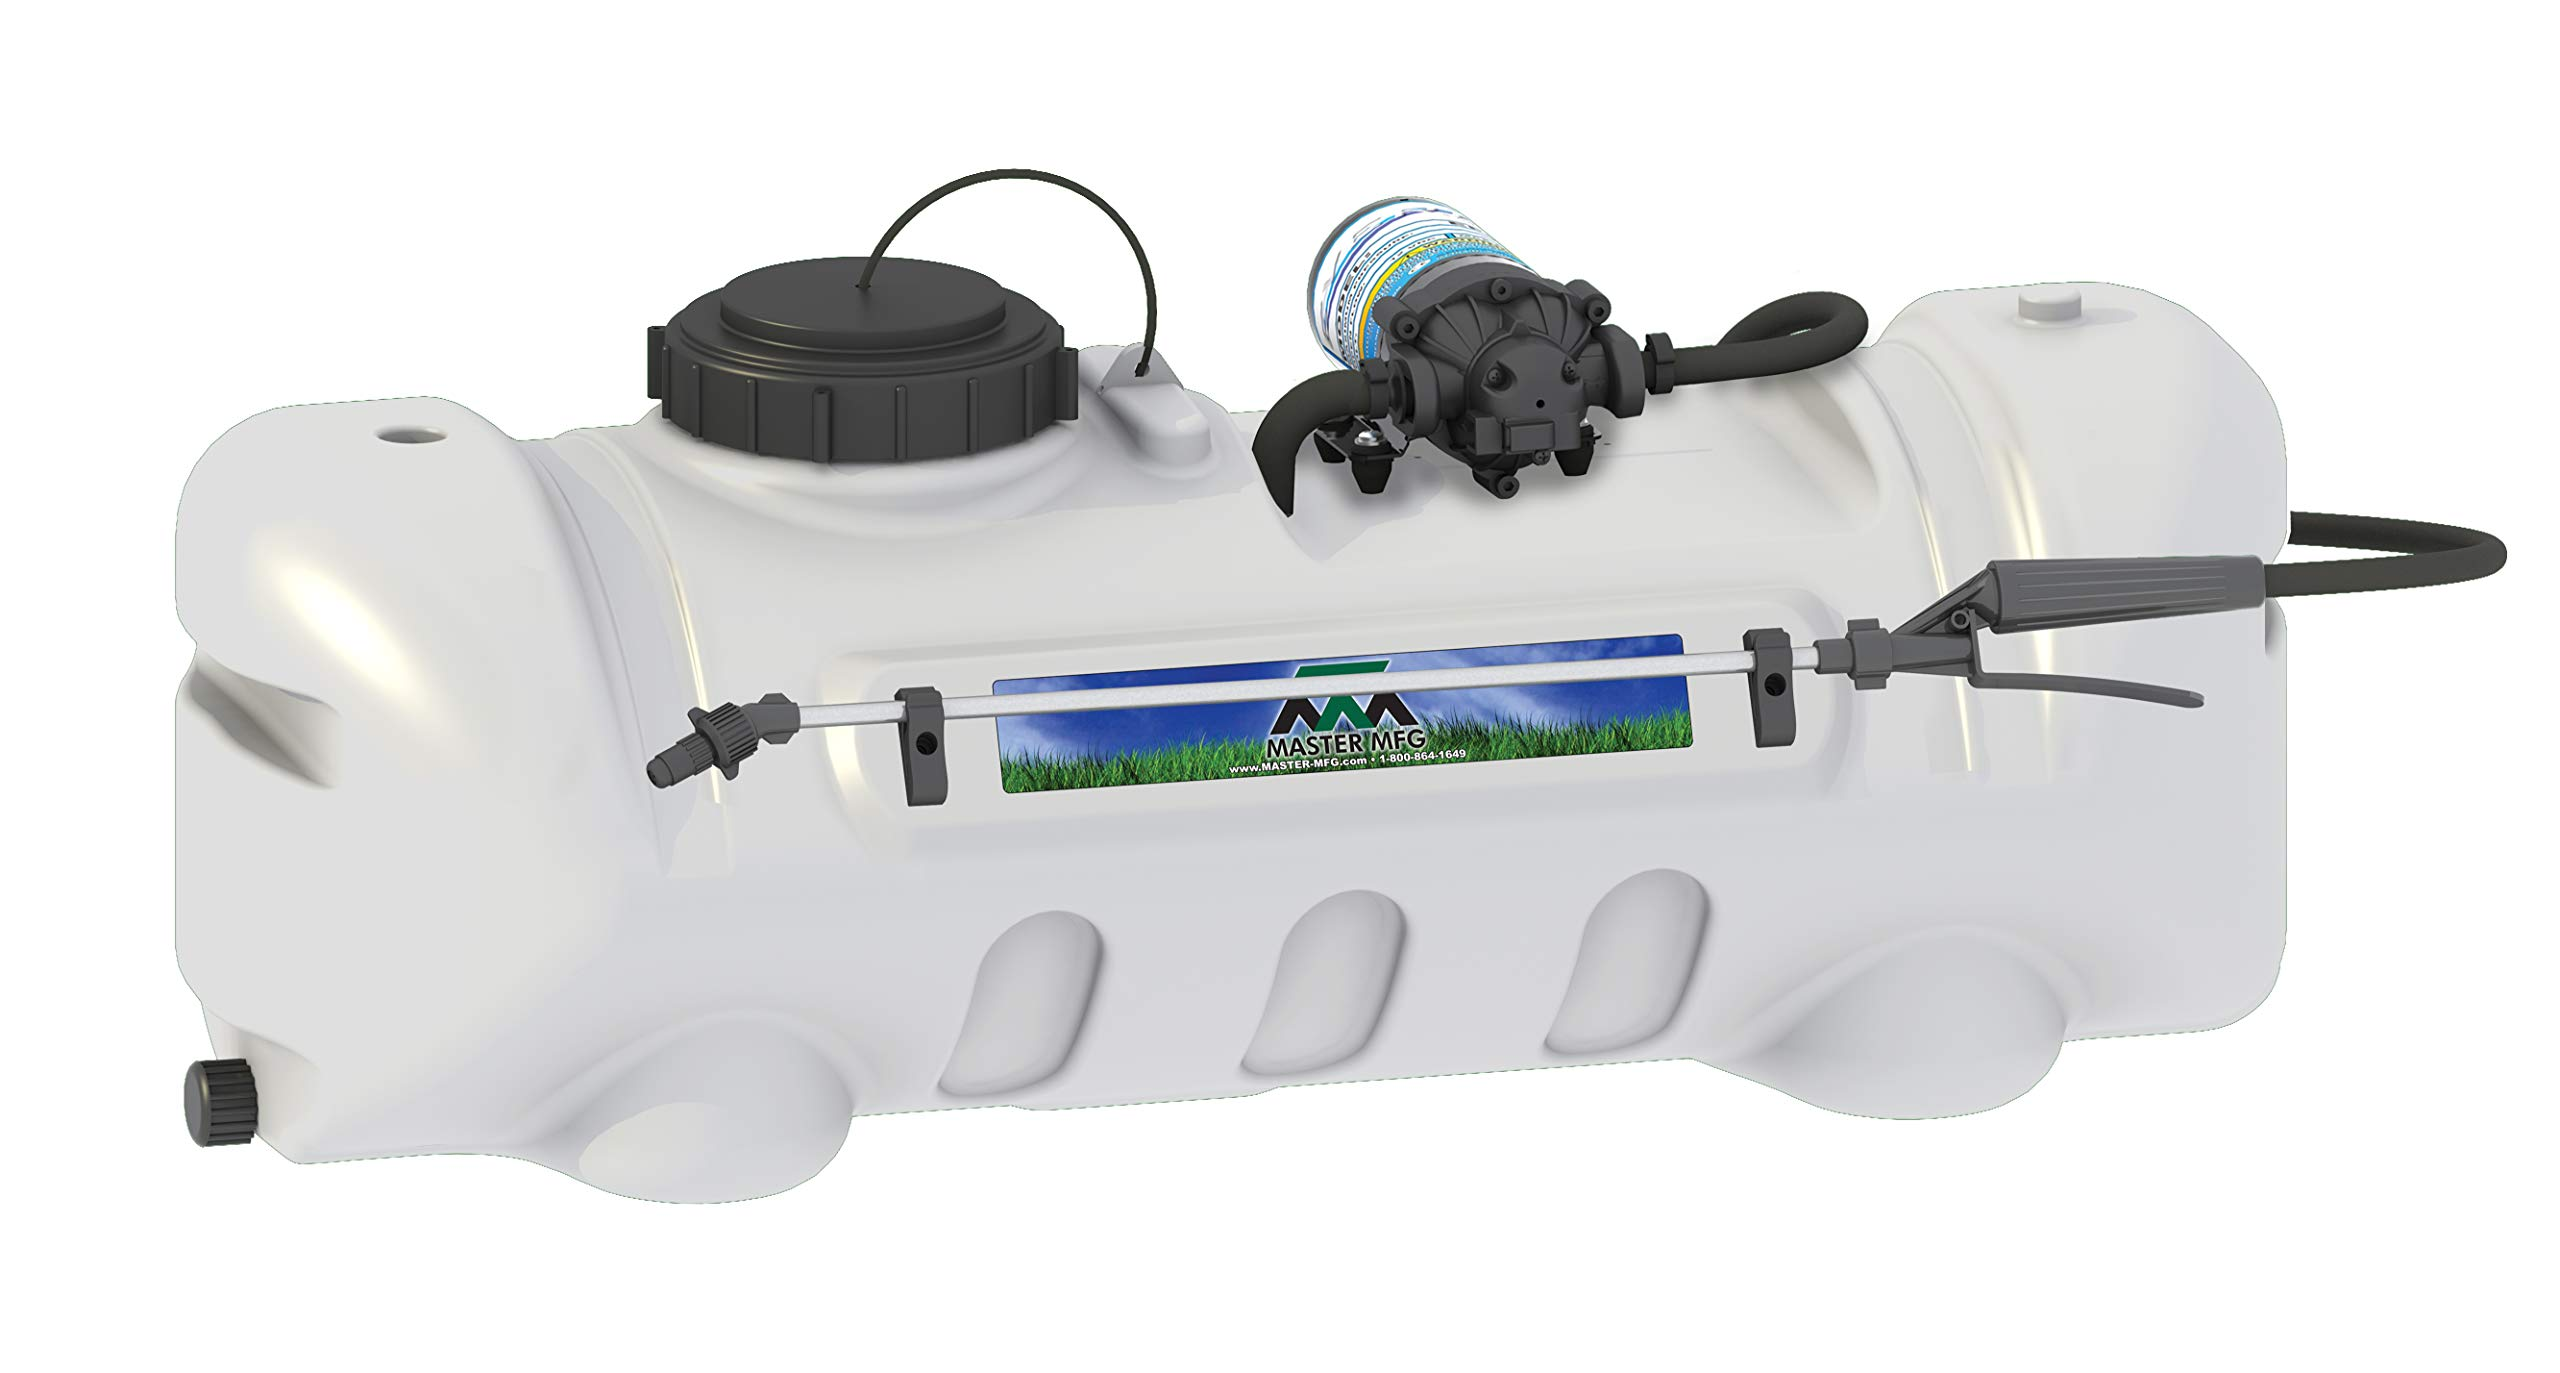 Master Manufacturing SSO-01-015A-MM 15 Gallon Spot Sprayer-Everflo 2.2 GPM by Master Manufacturing (Image #1)